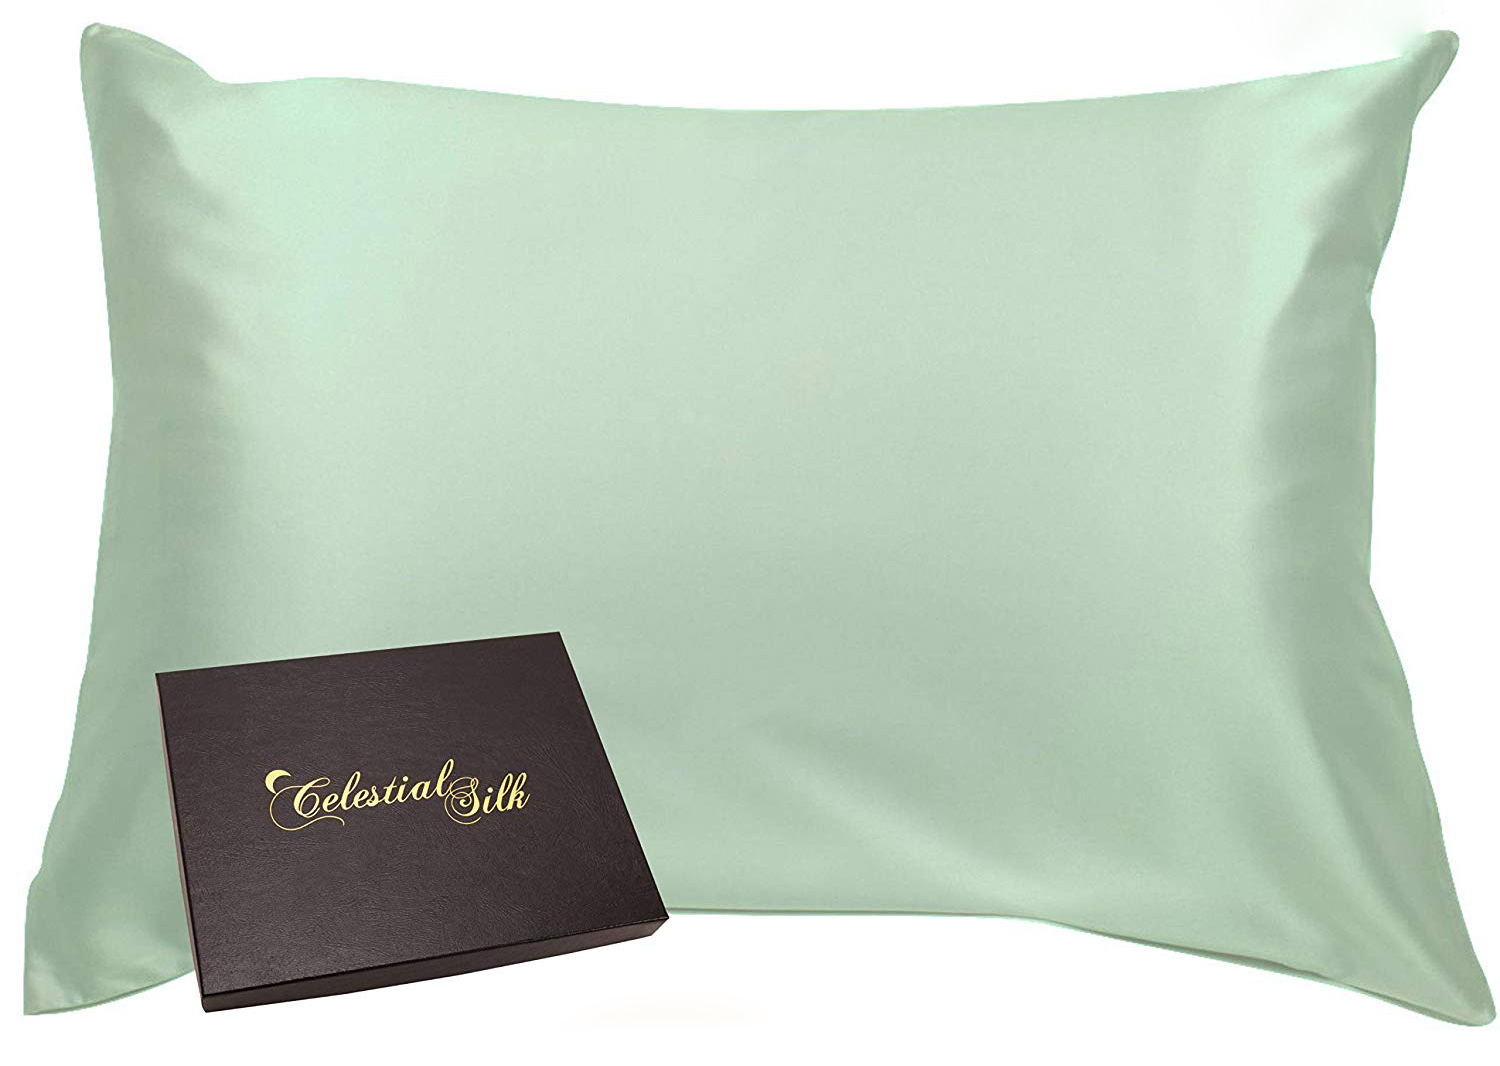 Celestial Silk 100% Silk Pillowcase for Hair Zippered Luxury 25 Momme Mulberry Silk Charmeuse Silk on Both Sides of Cover -Gift Wrapped- (King, Mint Green)